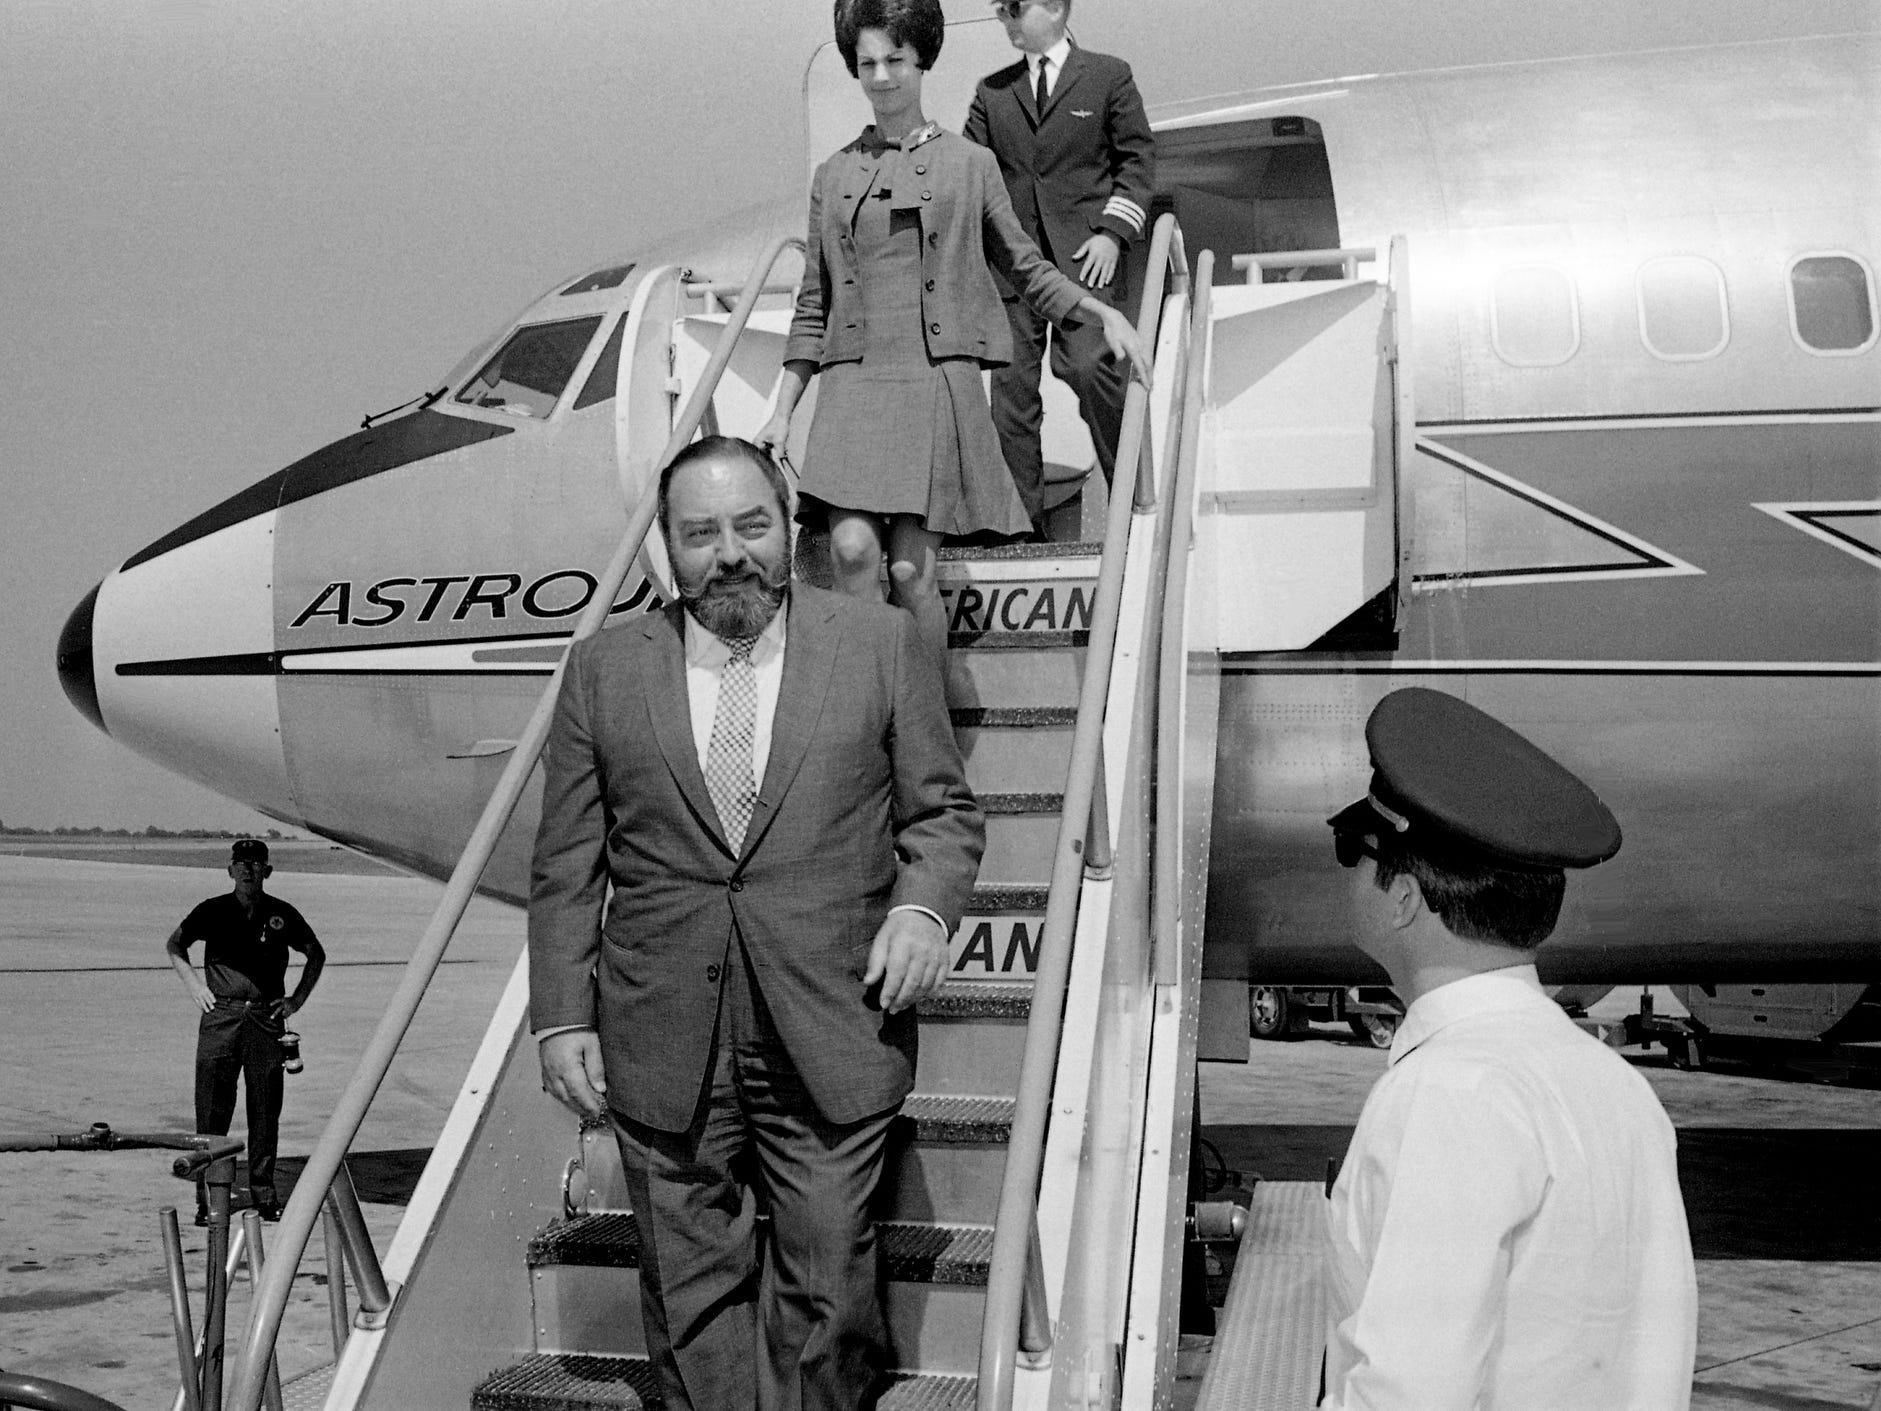 Television and motion picture star Sebastian Cabot, front, arrives at Nashville Municipal Airport on Aug. 28, 1968. Cabot was in town for a national meeting of the Schertle Galleries franchise, a subsidiary of LIN Broadcasting Corp., for which he was just named a curator.